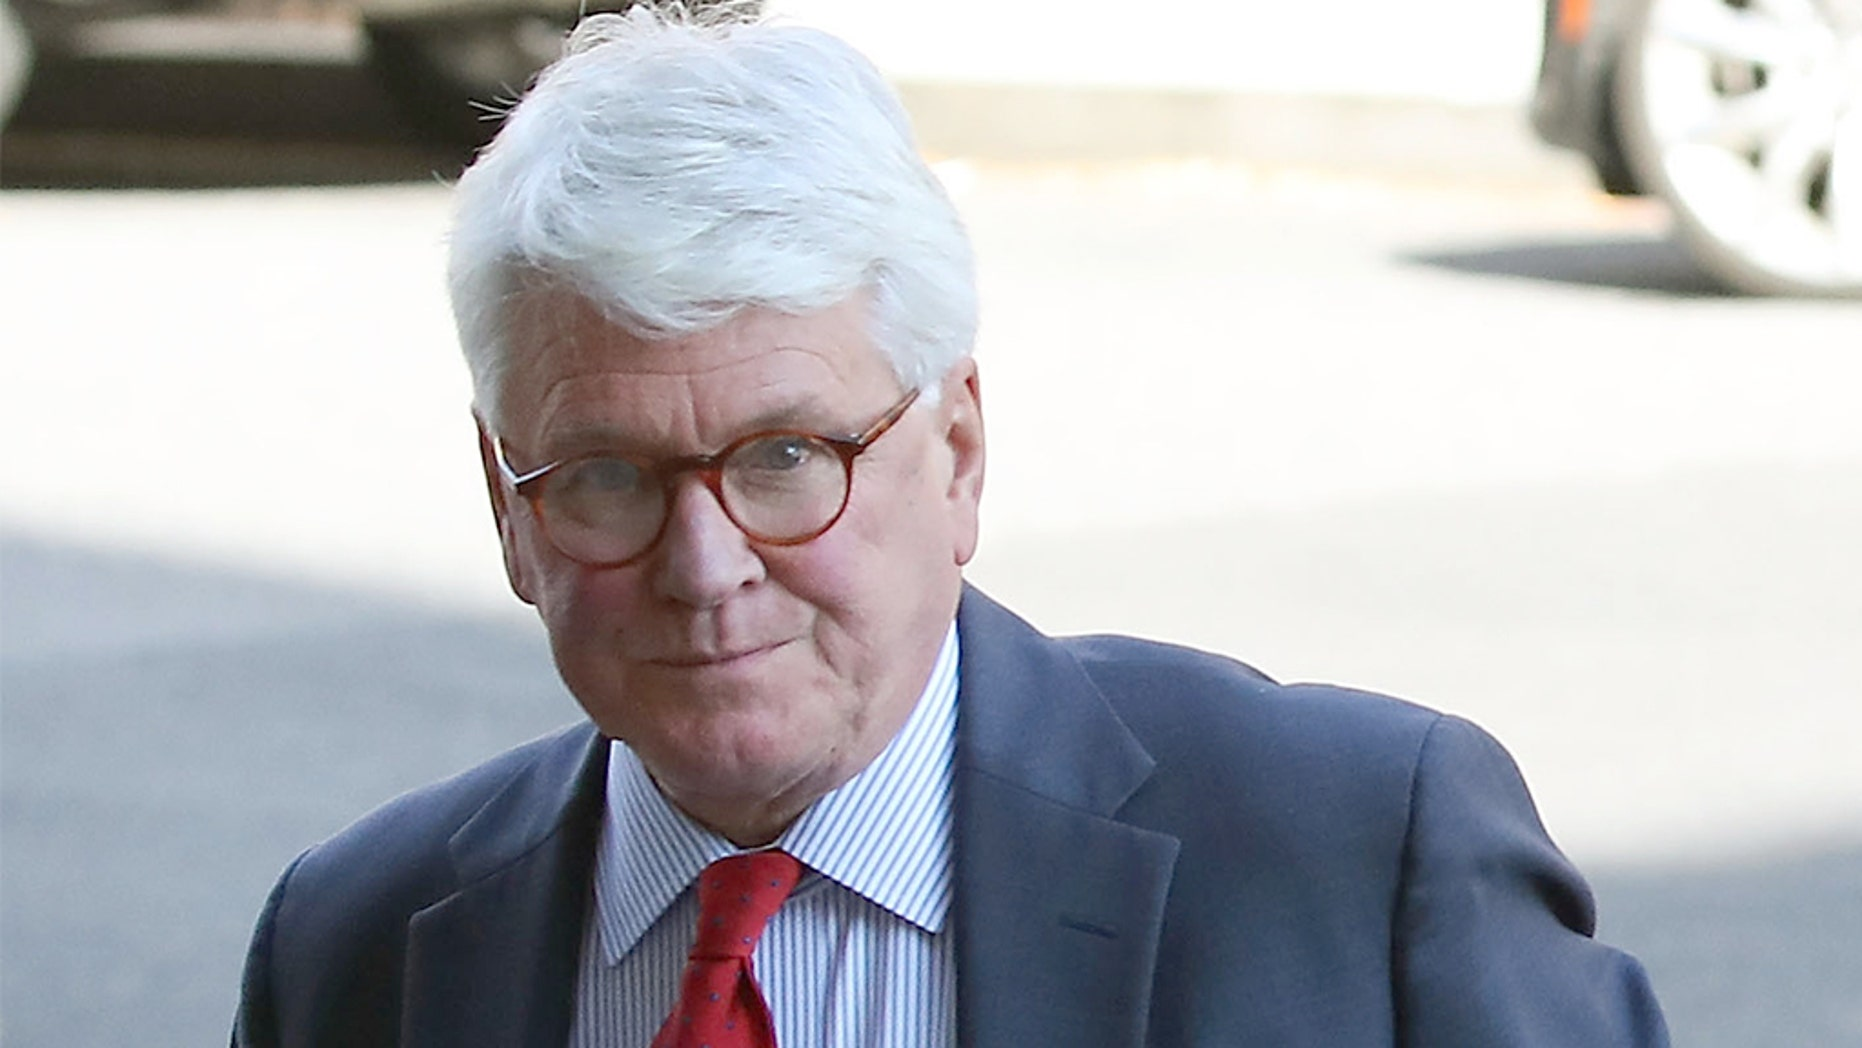 Former Obama White House counsel Greg Craig's lawyers reportedly said Wednesday that said Craig is expected to be charged